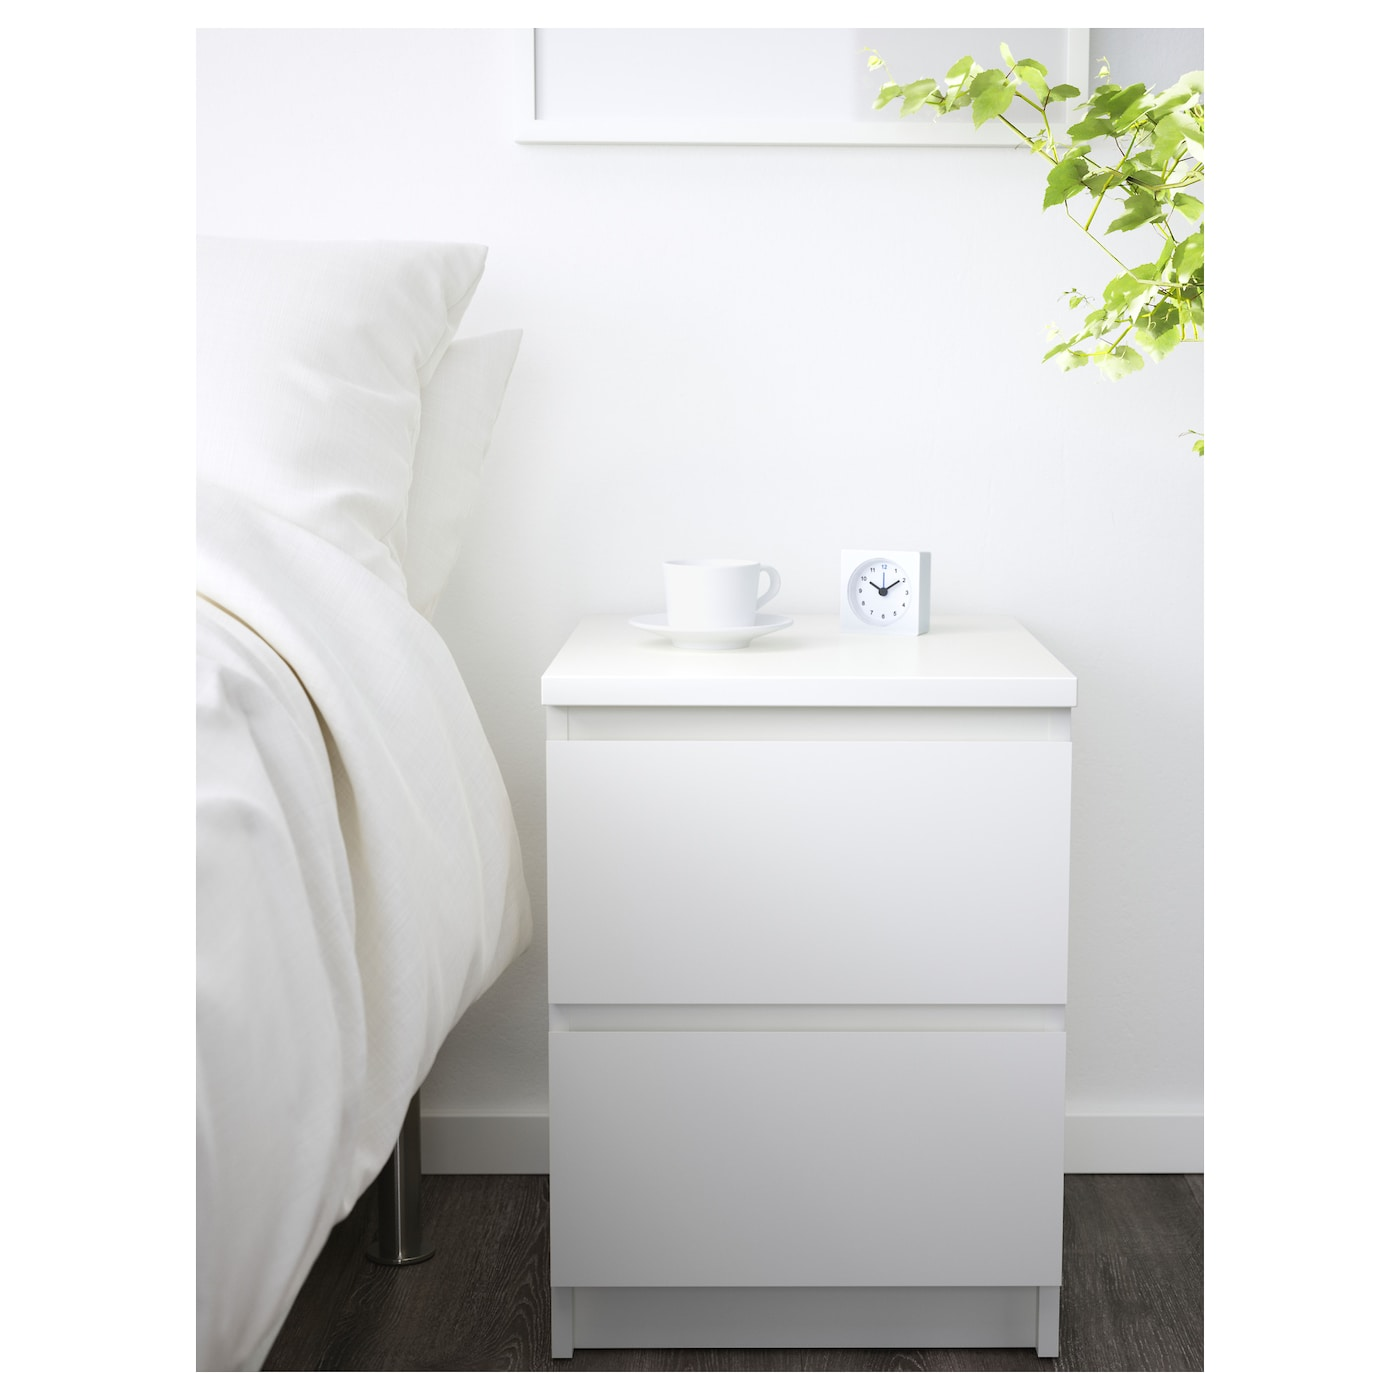 malm commode 2 tiroirs blanc 40 x 55 cm ikea. Black Bedroom Furniture Sets. Home Design Ideas